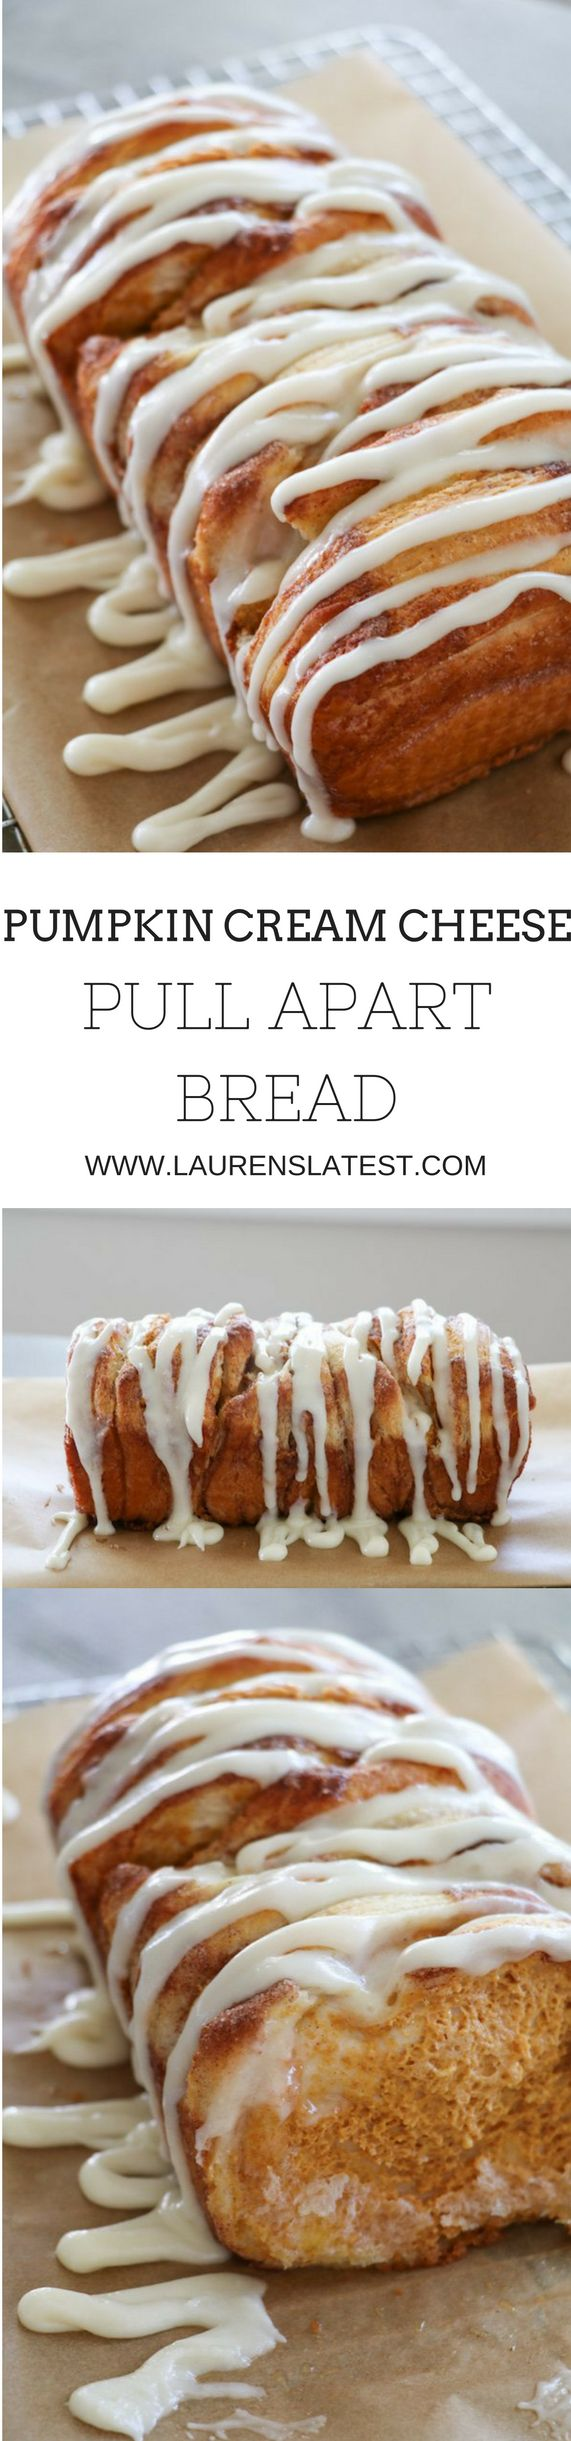 Pumpkin Cream Cheese Pull Apart Bread!! Holy dreamy and easy batman!